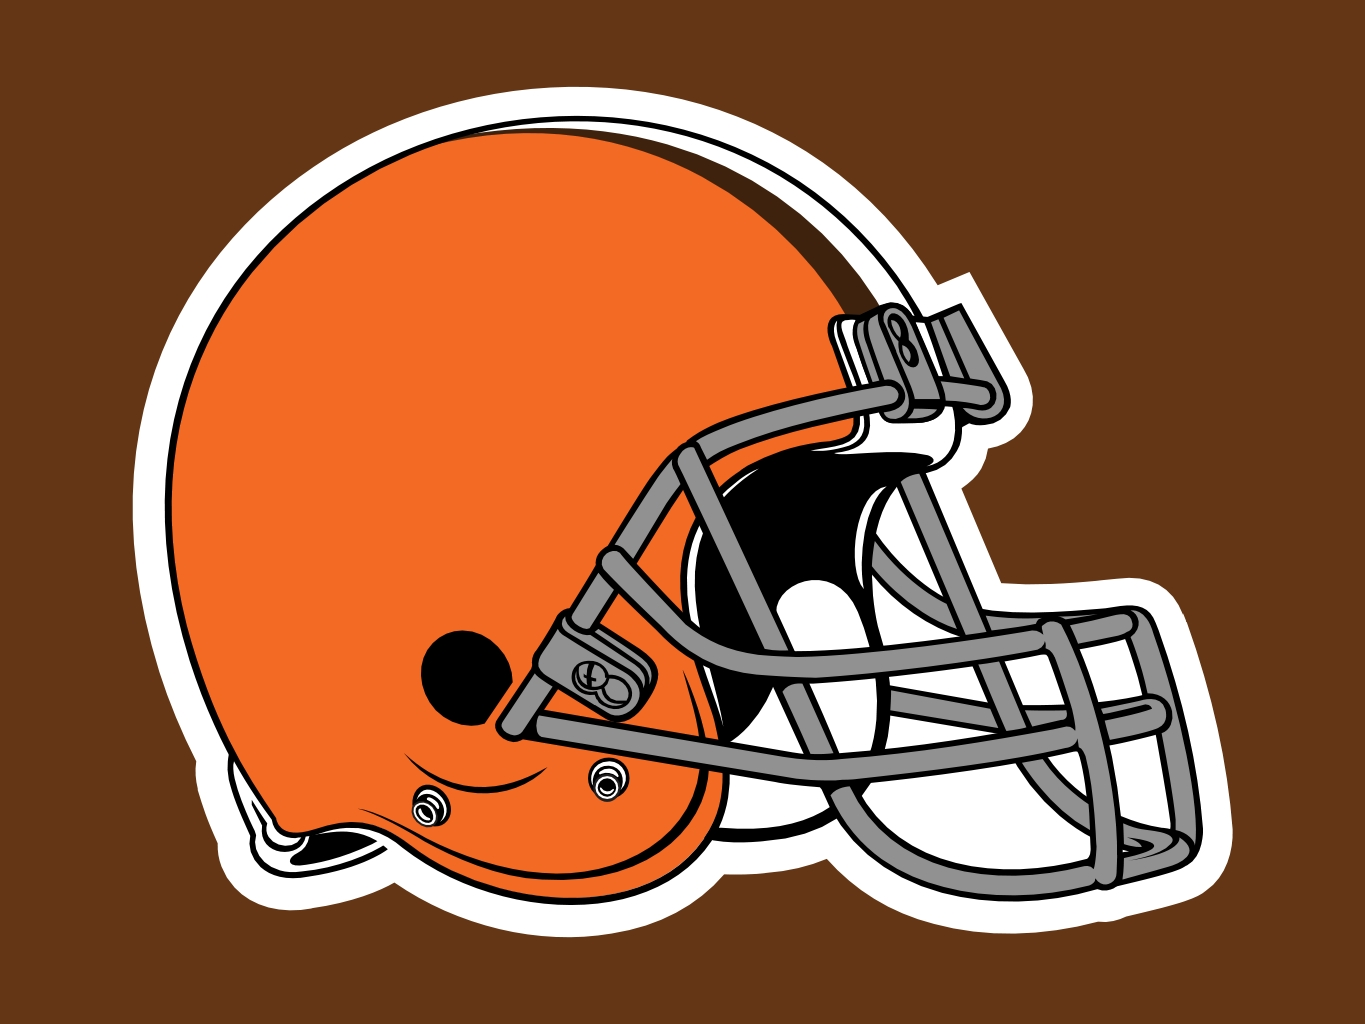 Rest easy cleveland browns fans the teams helmet will not be changing